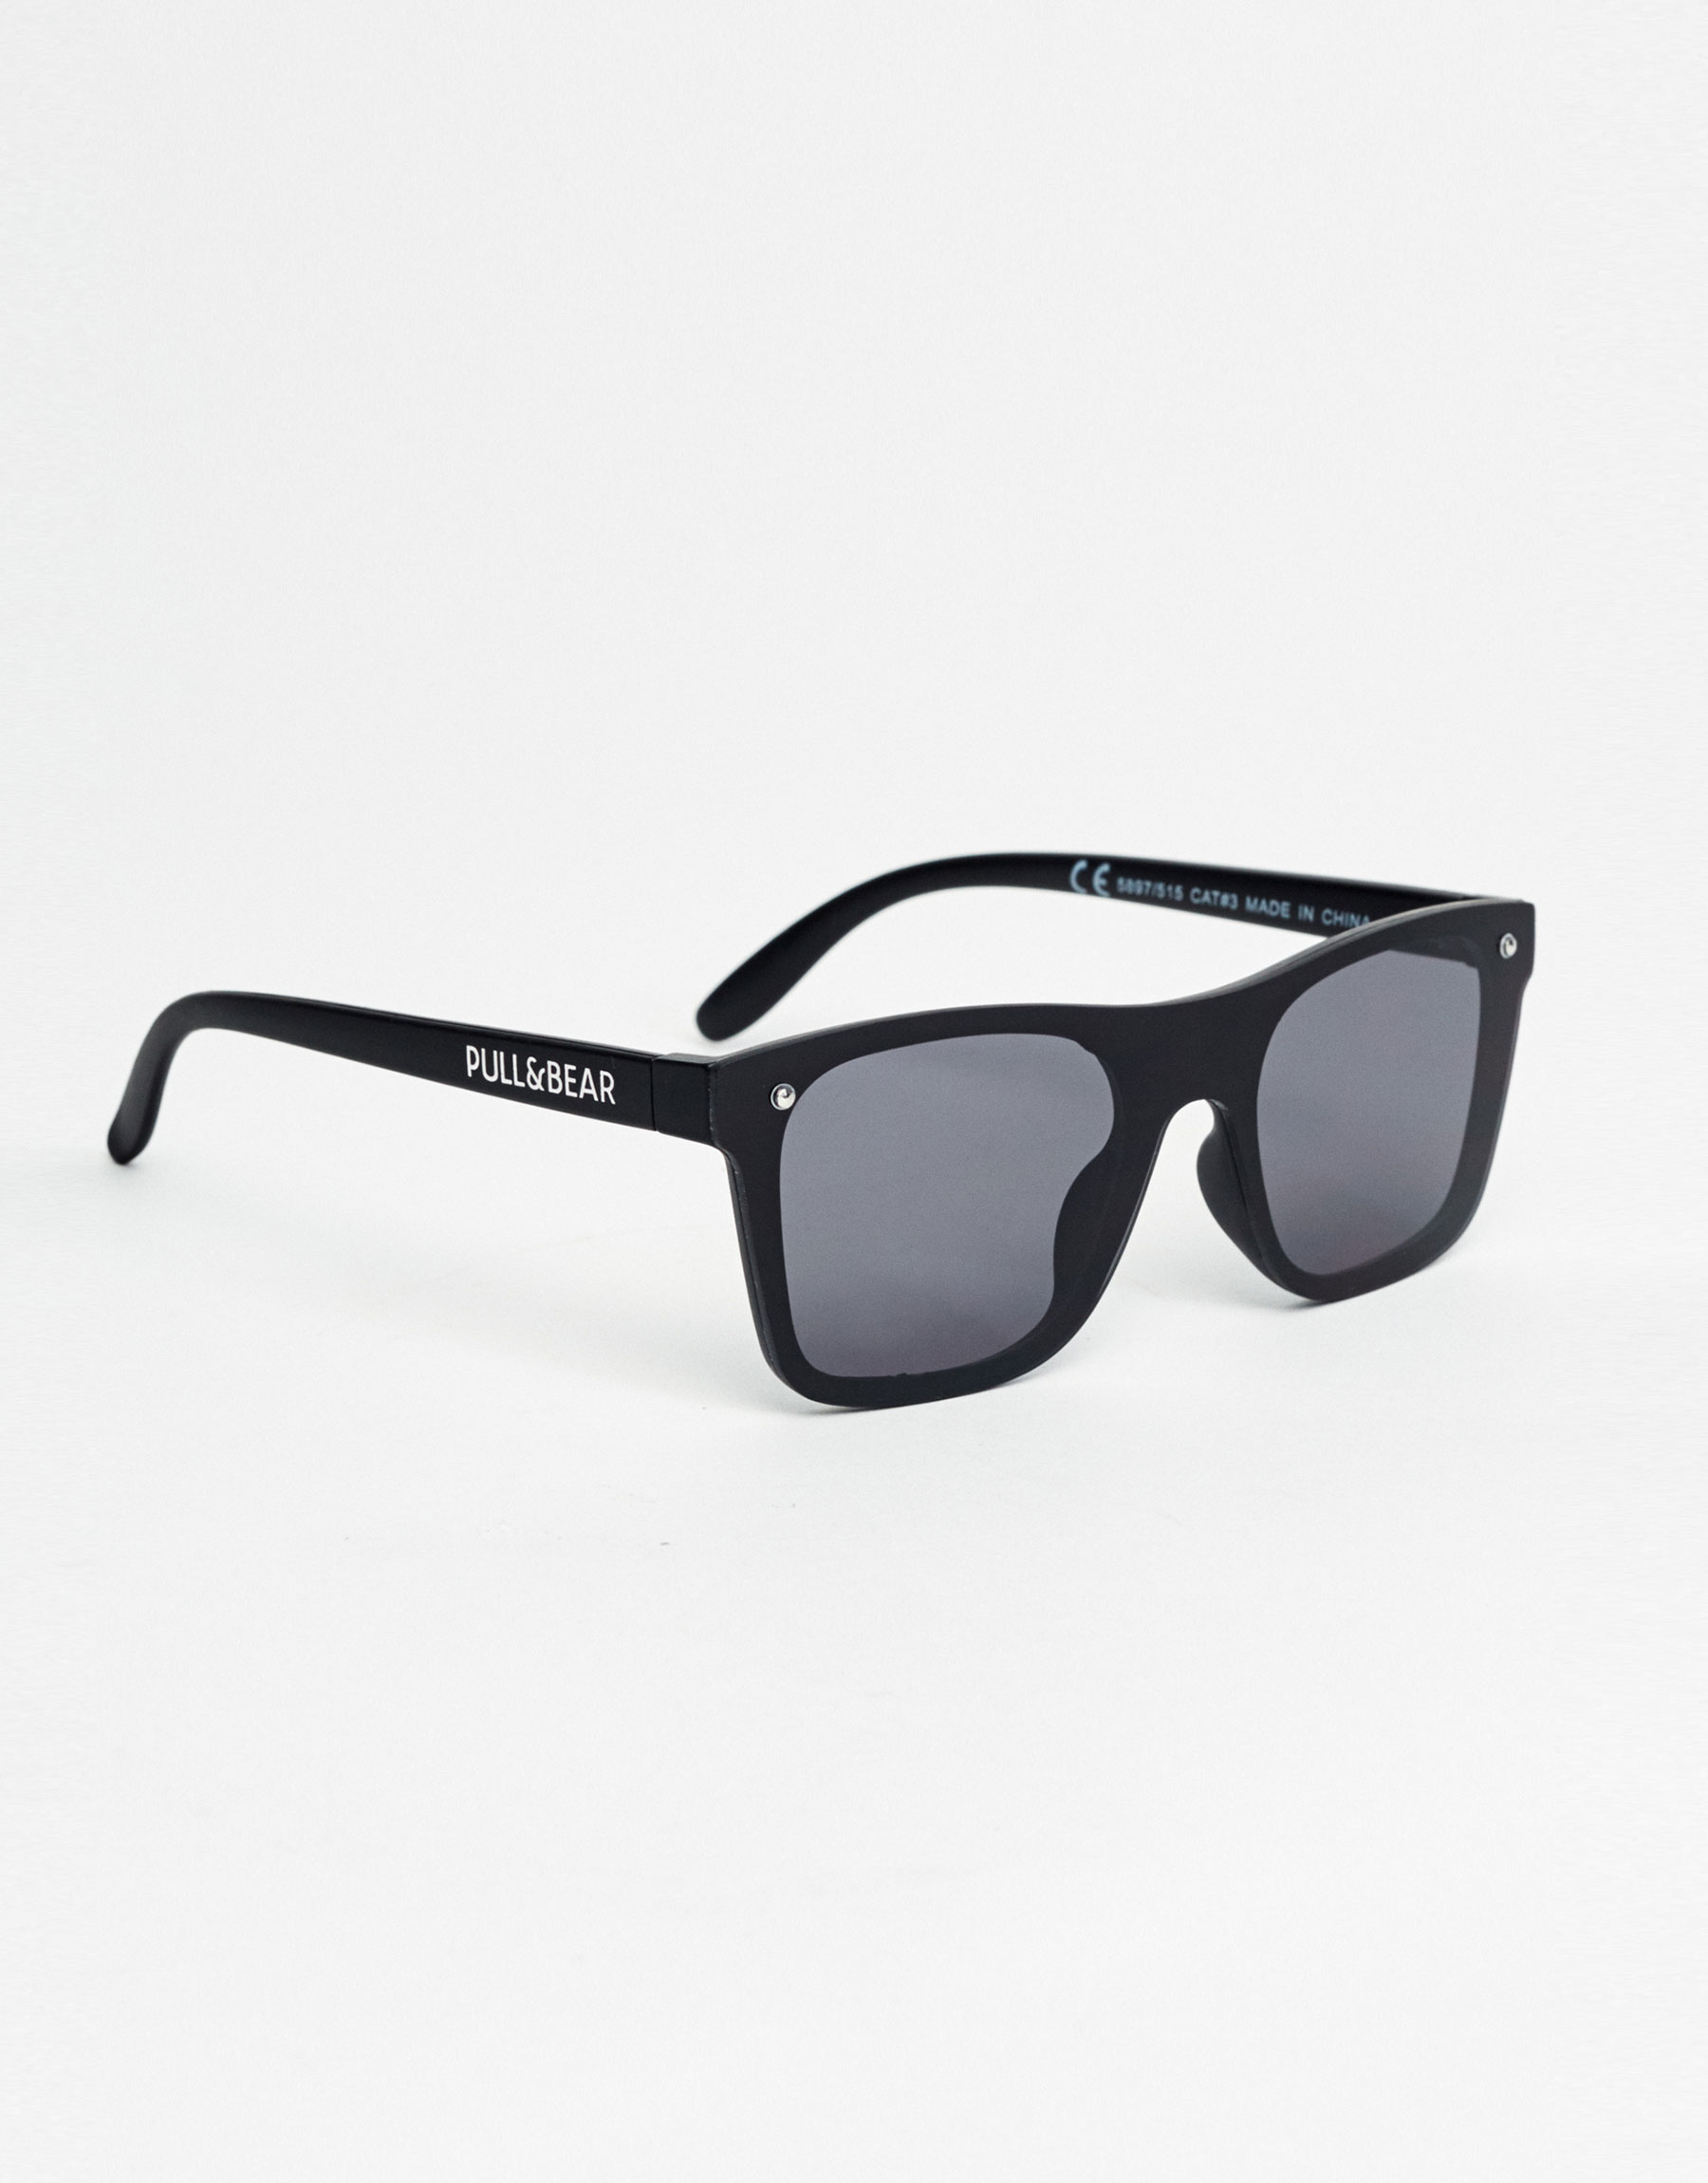 Complete mirror-effect sunglasses